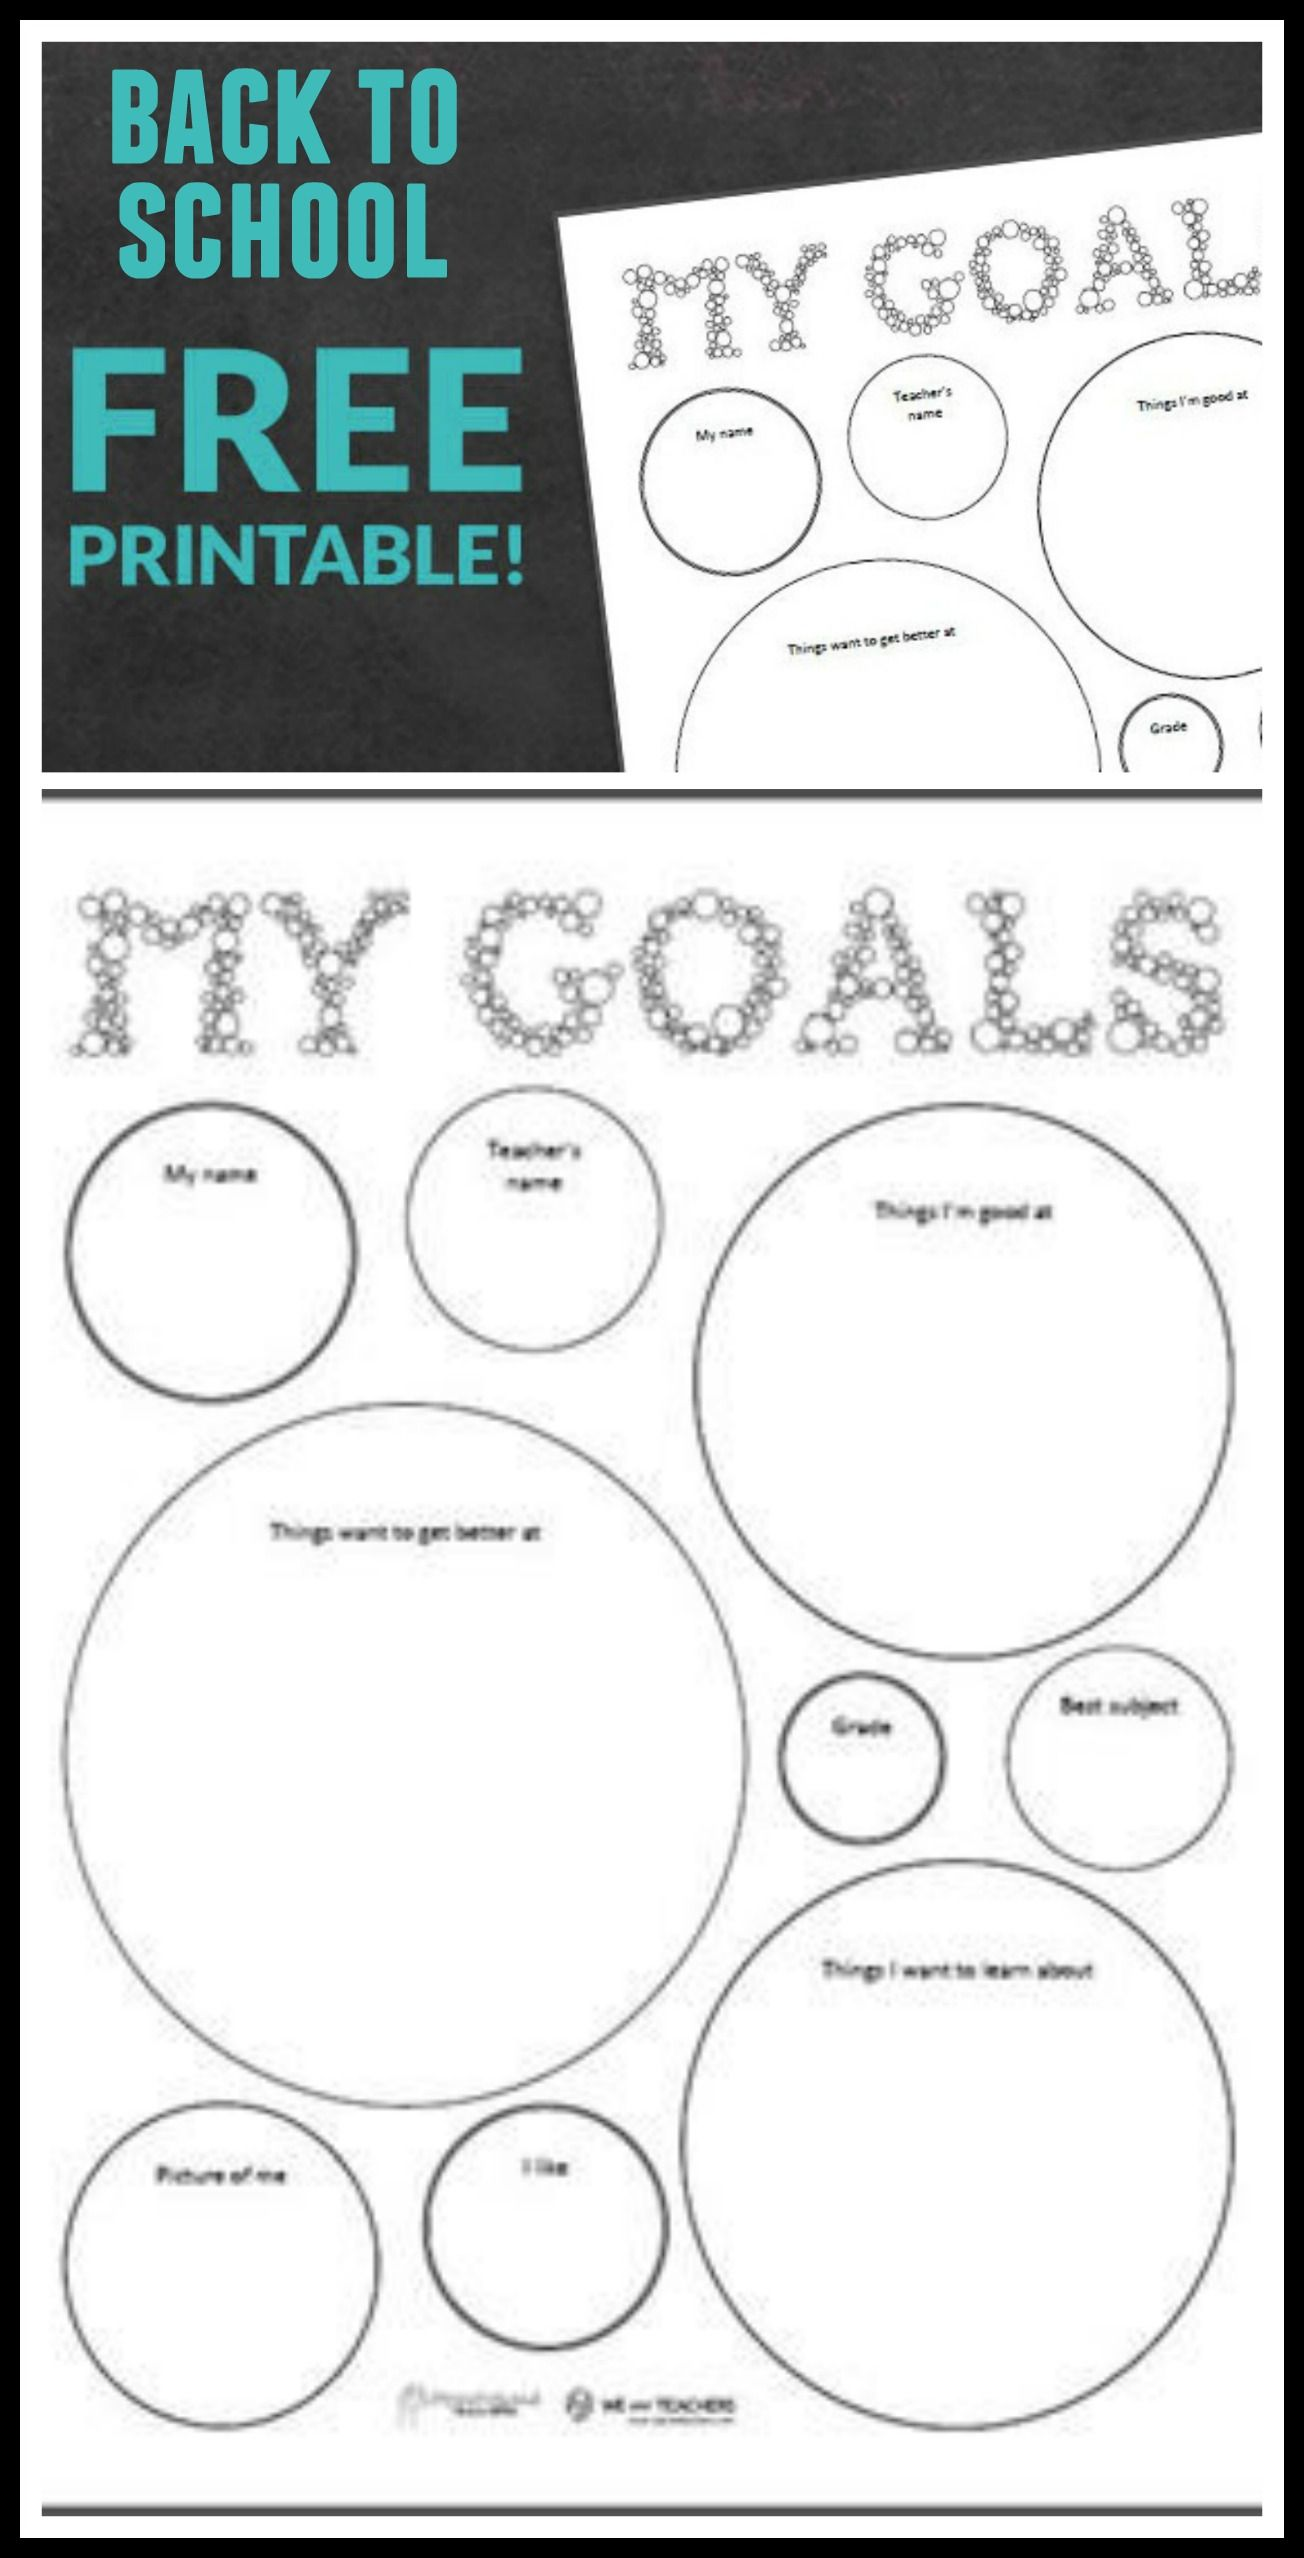 Help Students Set Goals This School Year With Our Free ...